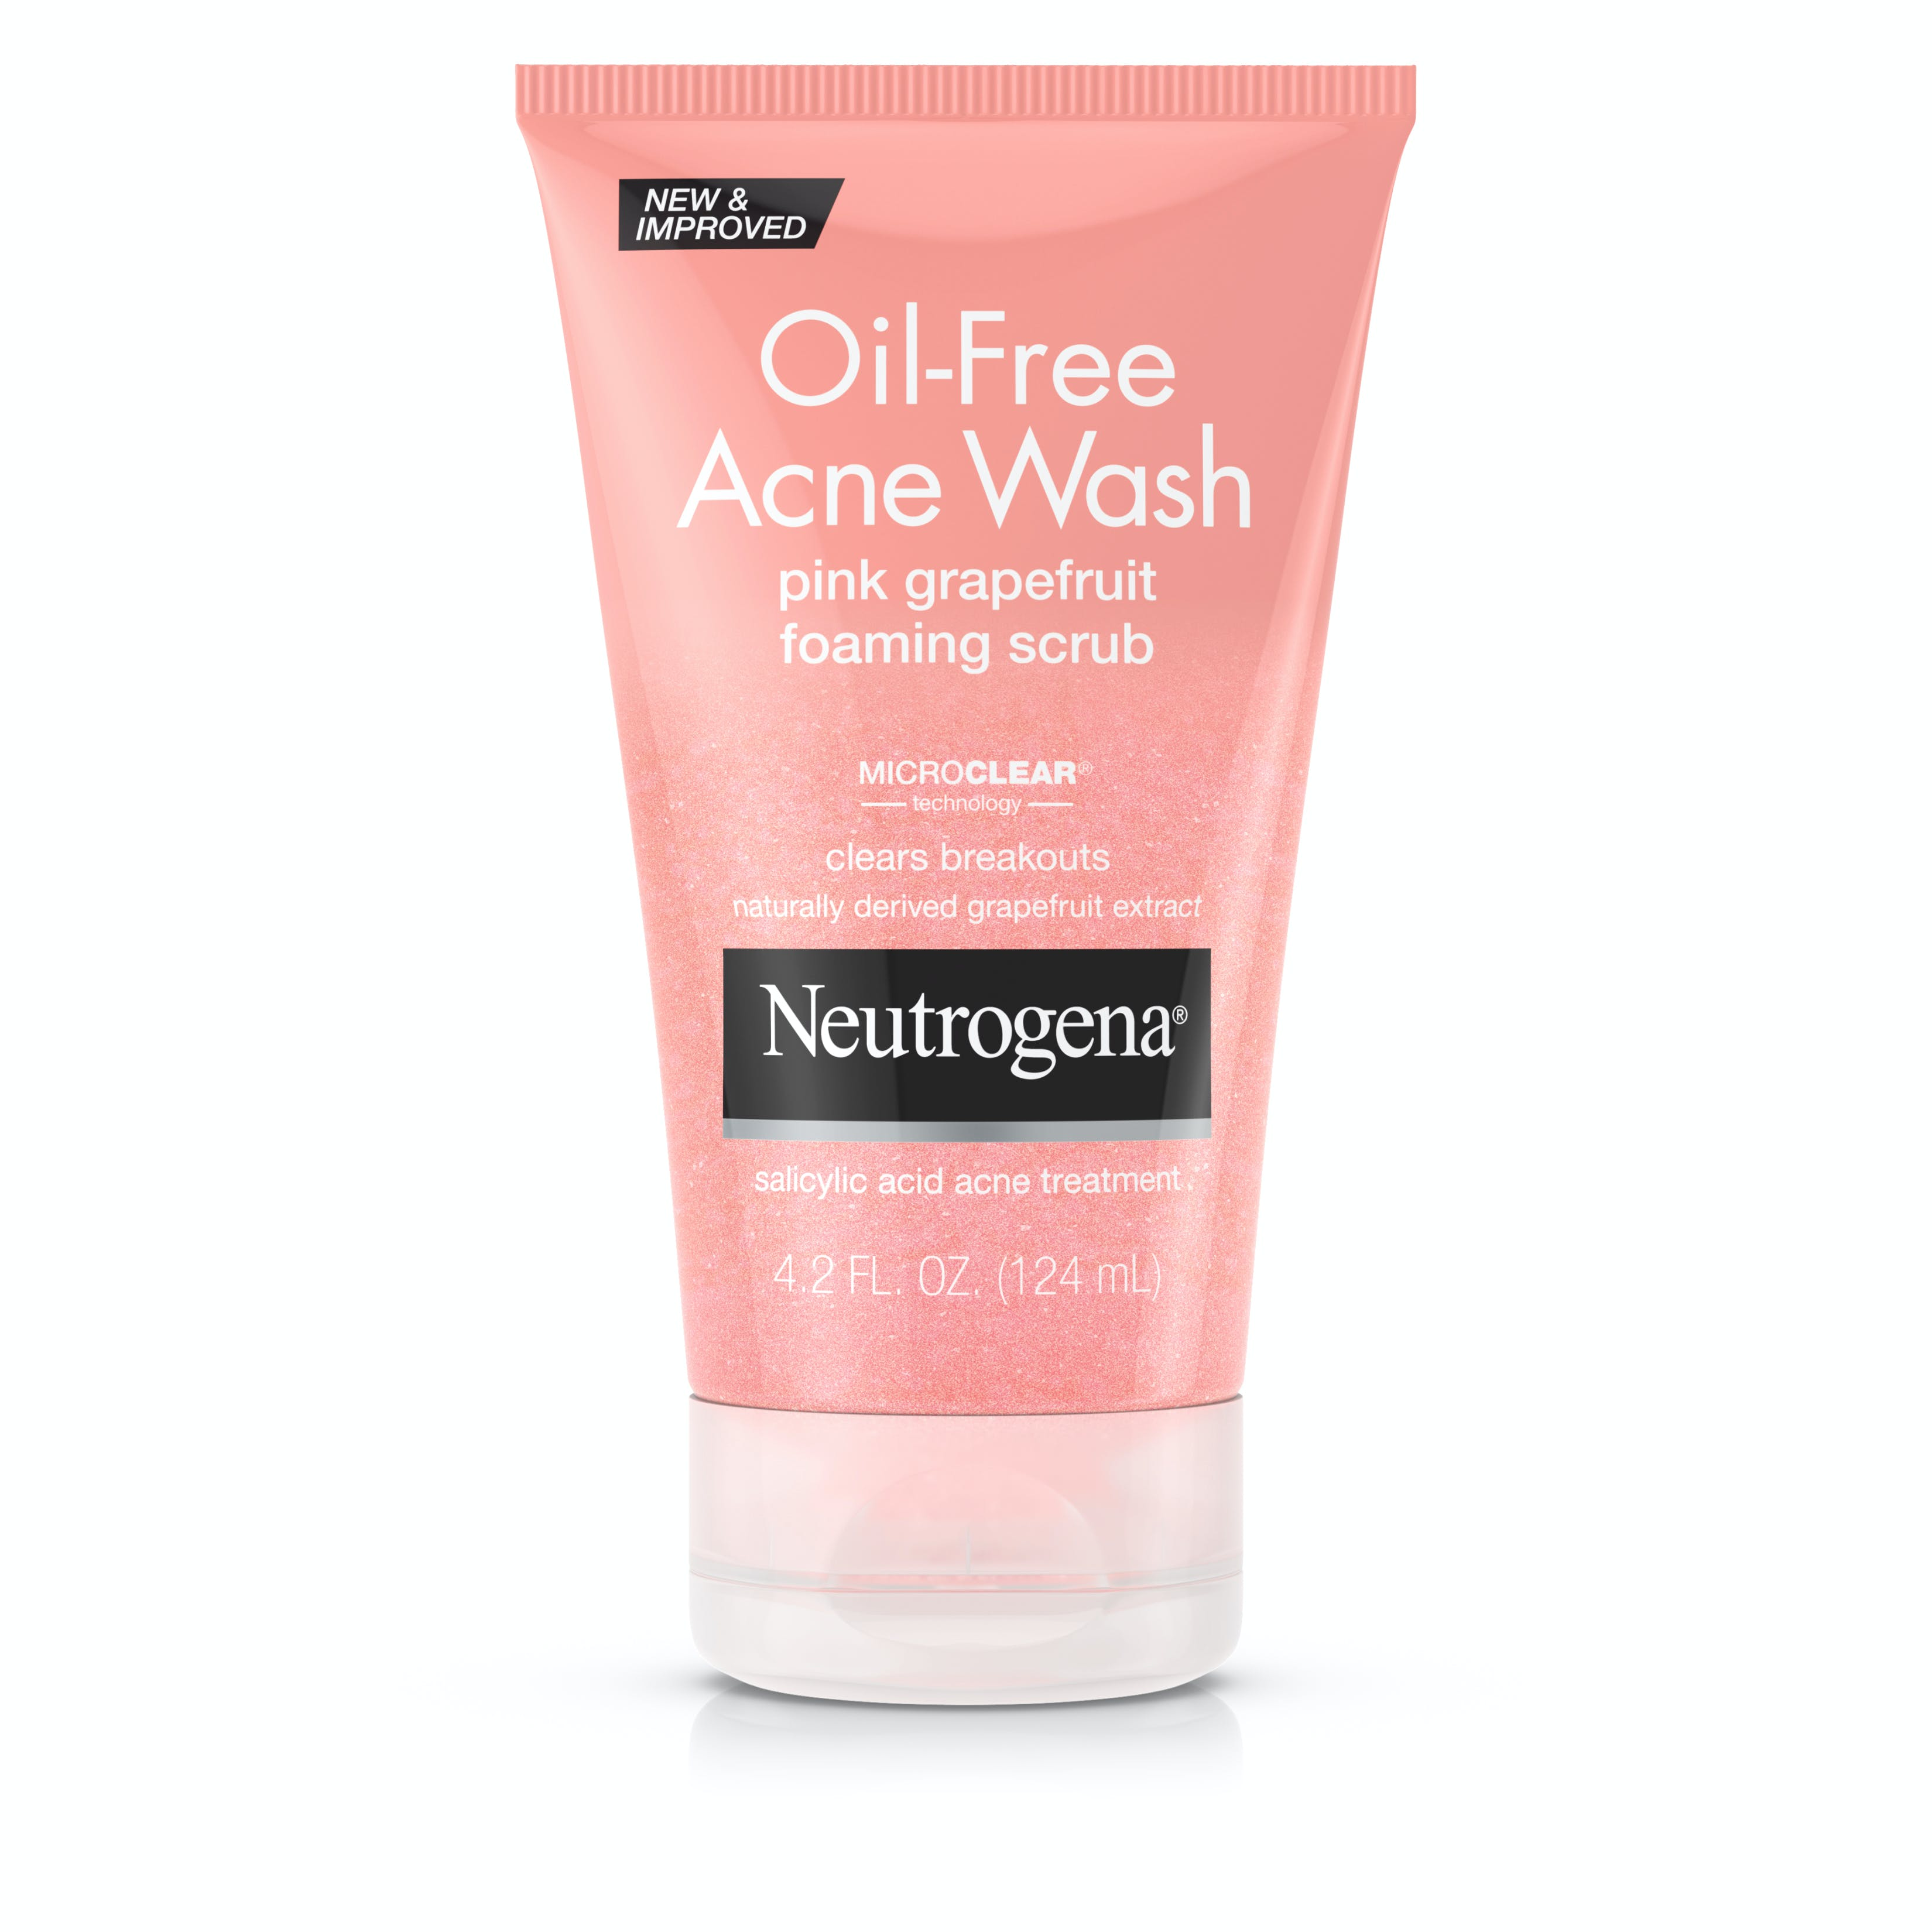 pics 10 Best Neutrogena Face Washes Available in India 2019